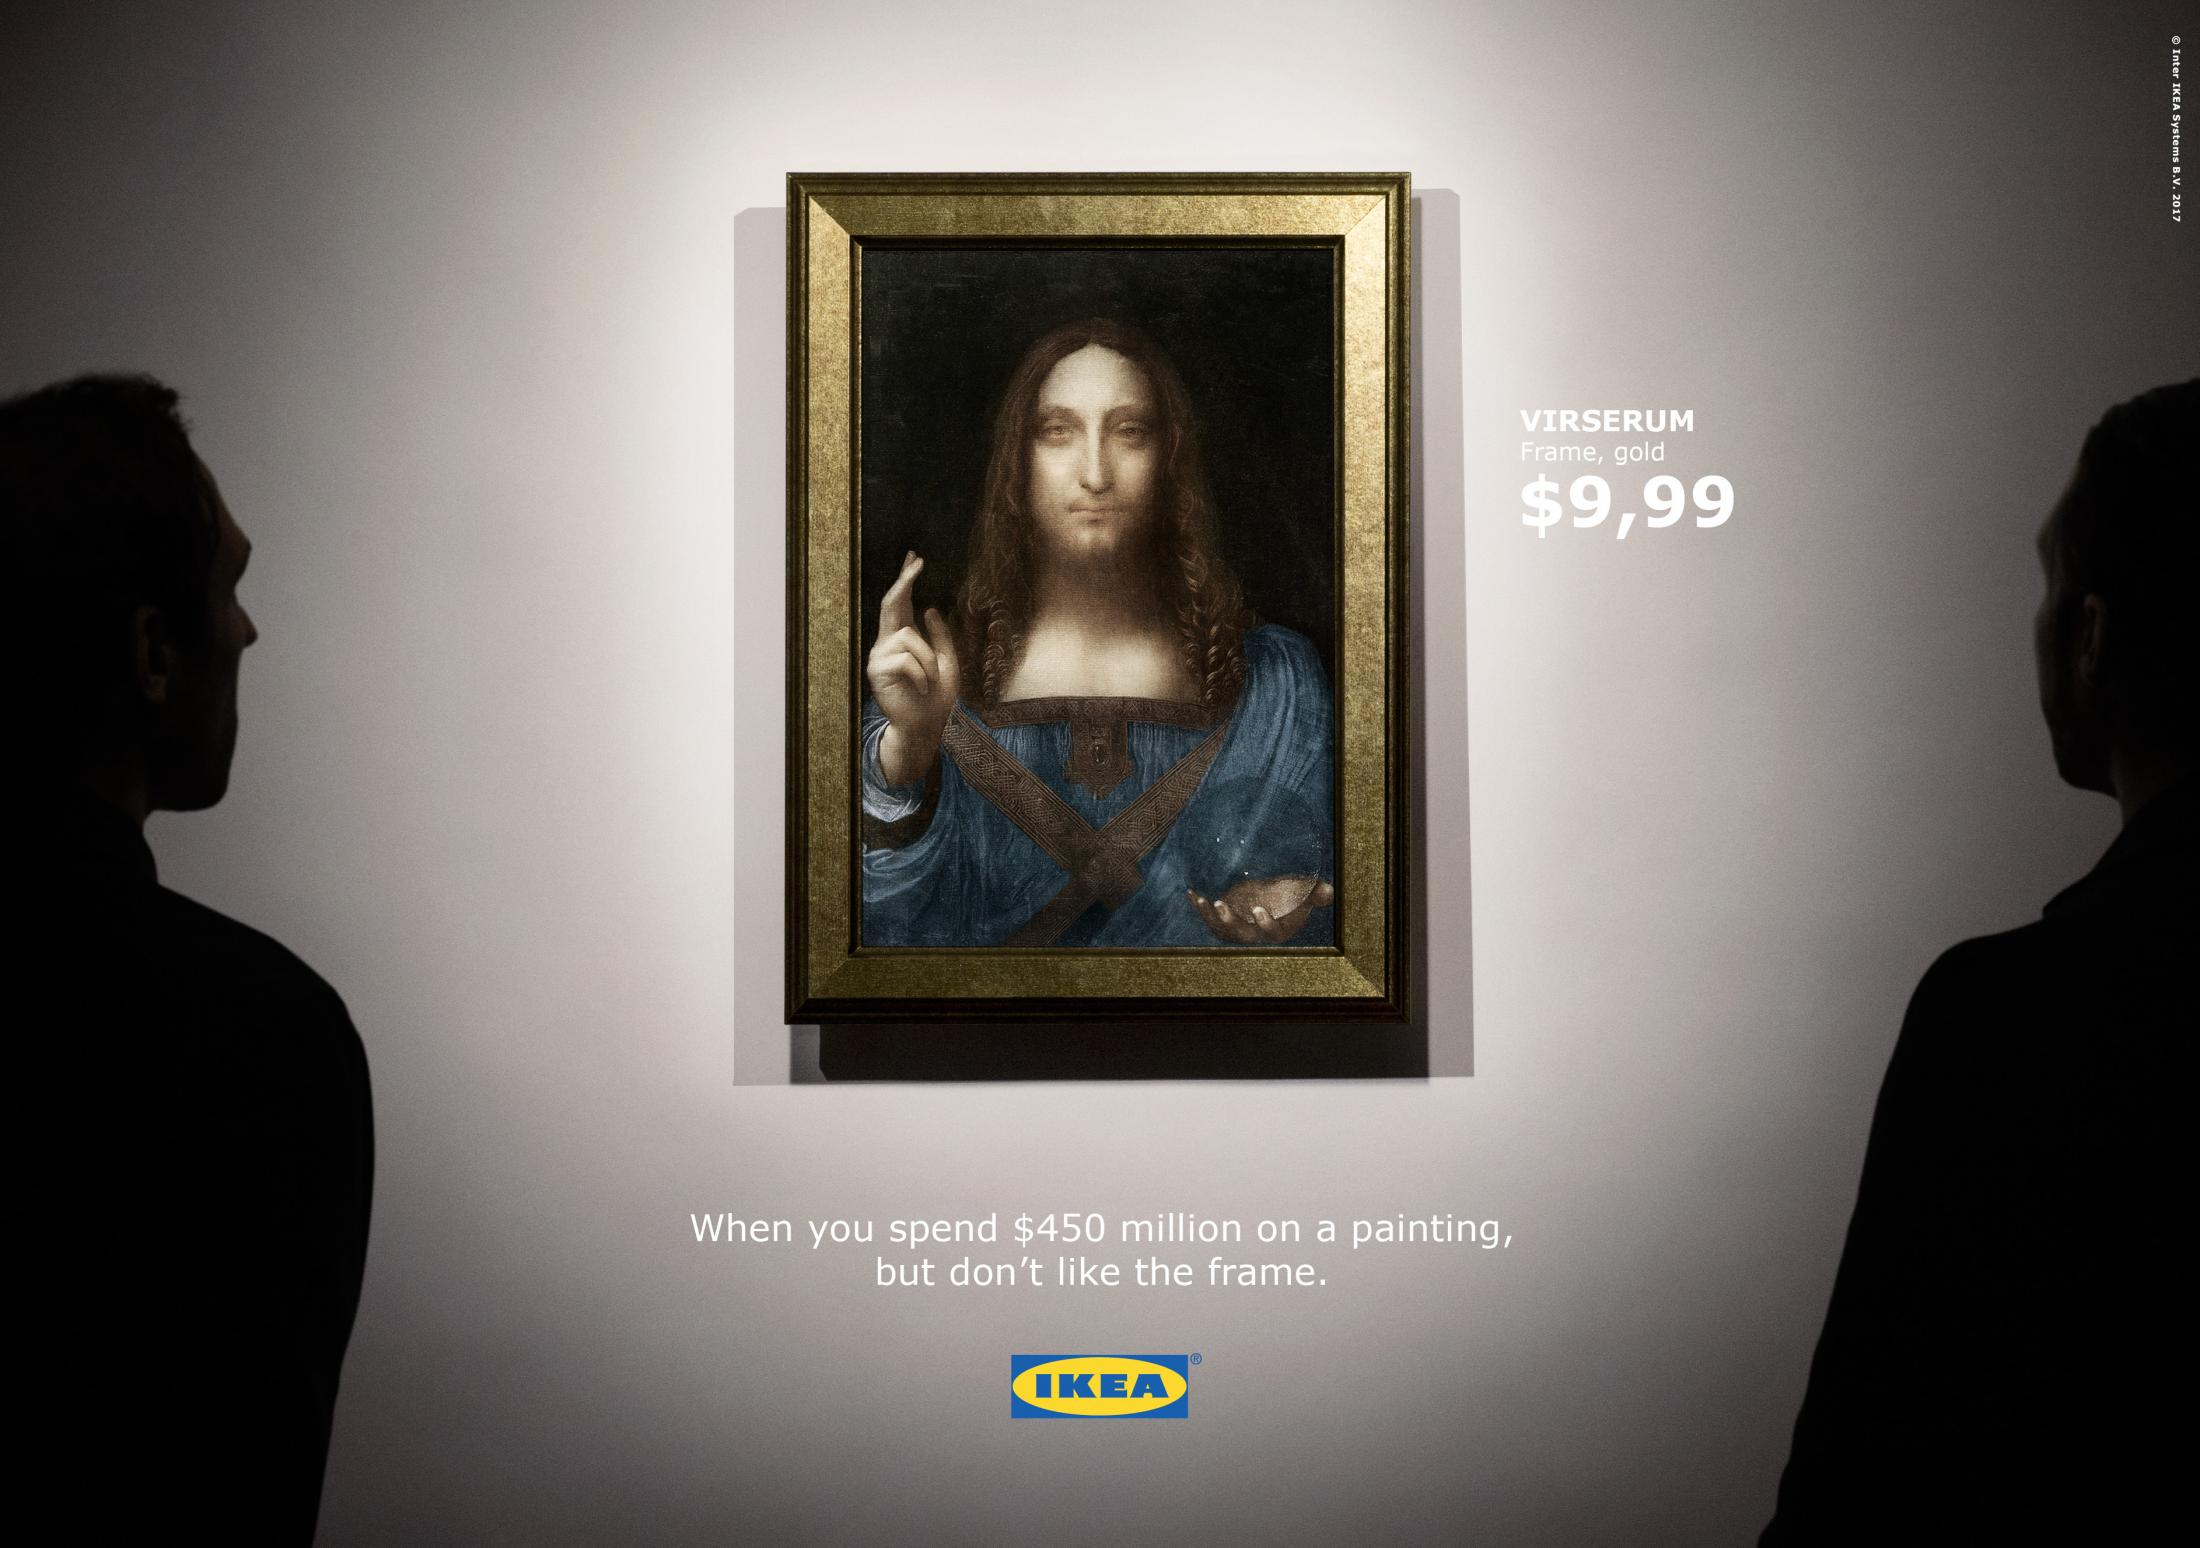 IKEA Digital Ad - Ikea's response to the world's most expensive painting